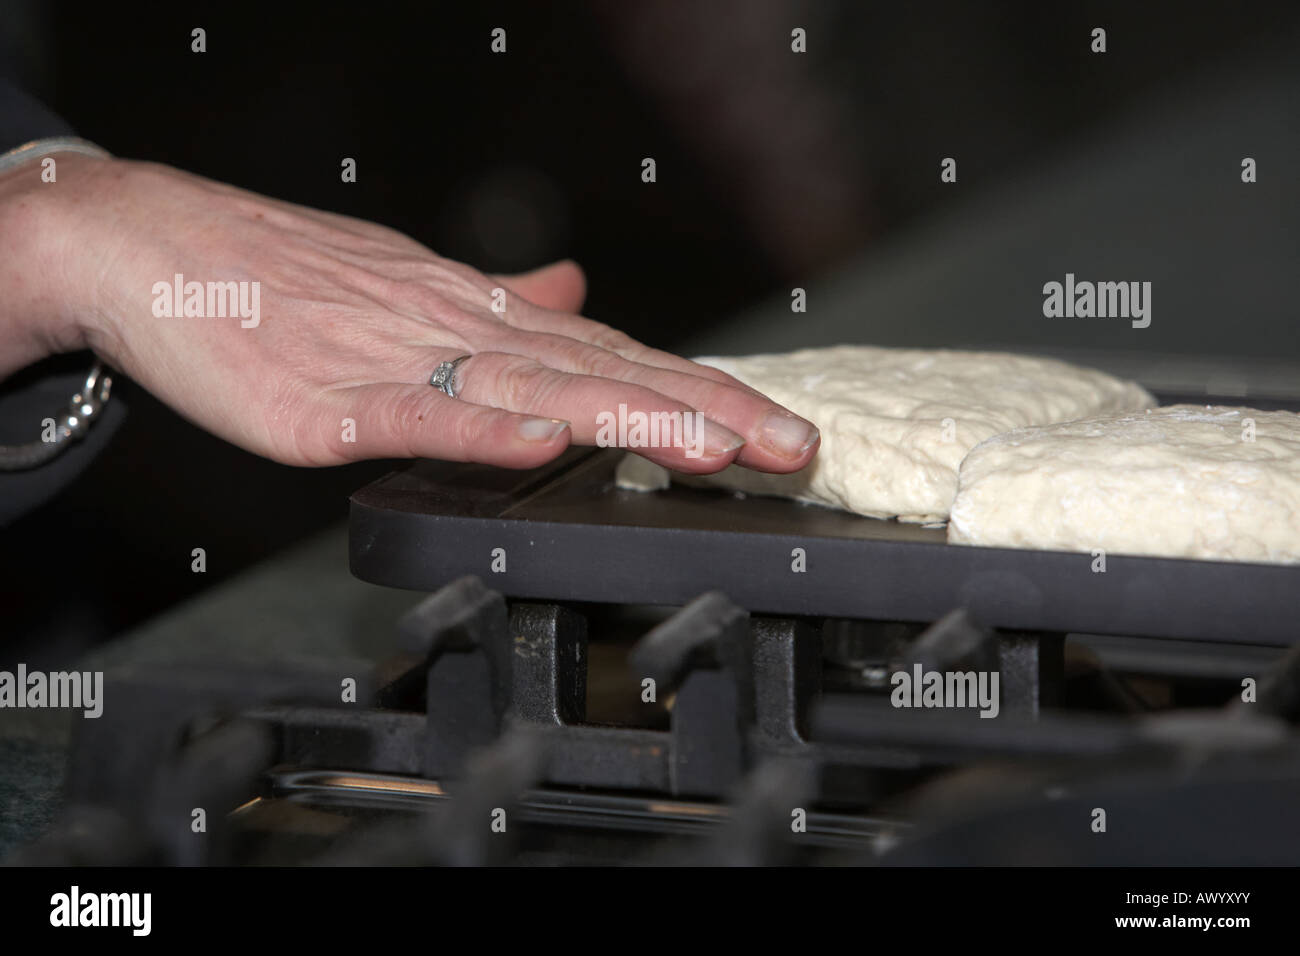 womans hand testing temperature of griddle cooking traditional irish soda bread - Stock Image